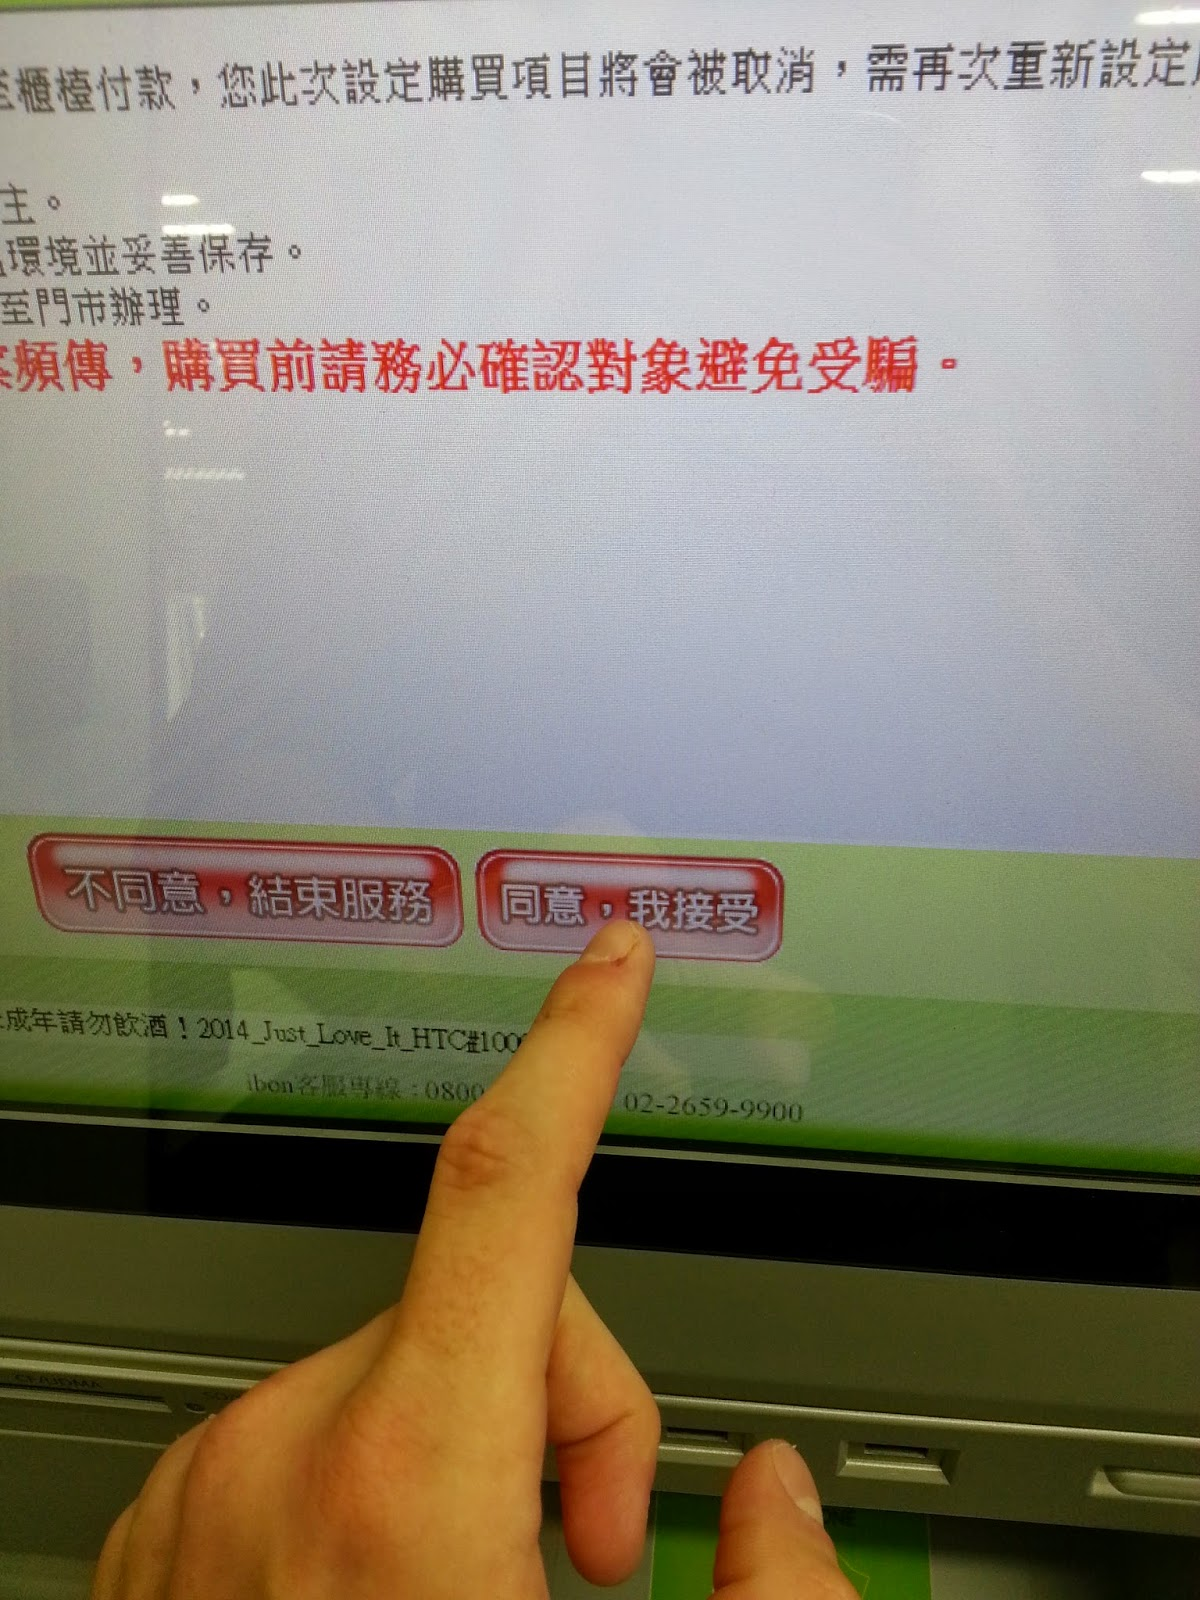 Step 2 of recharging your pre-paid Taiwanese phone number.